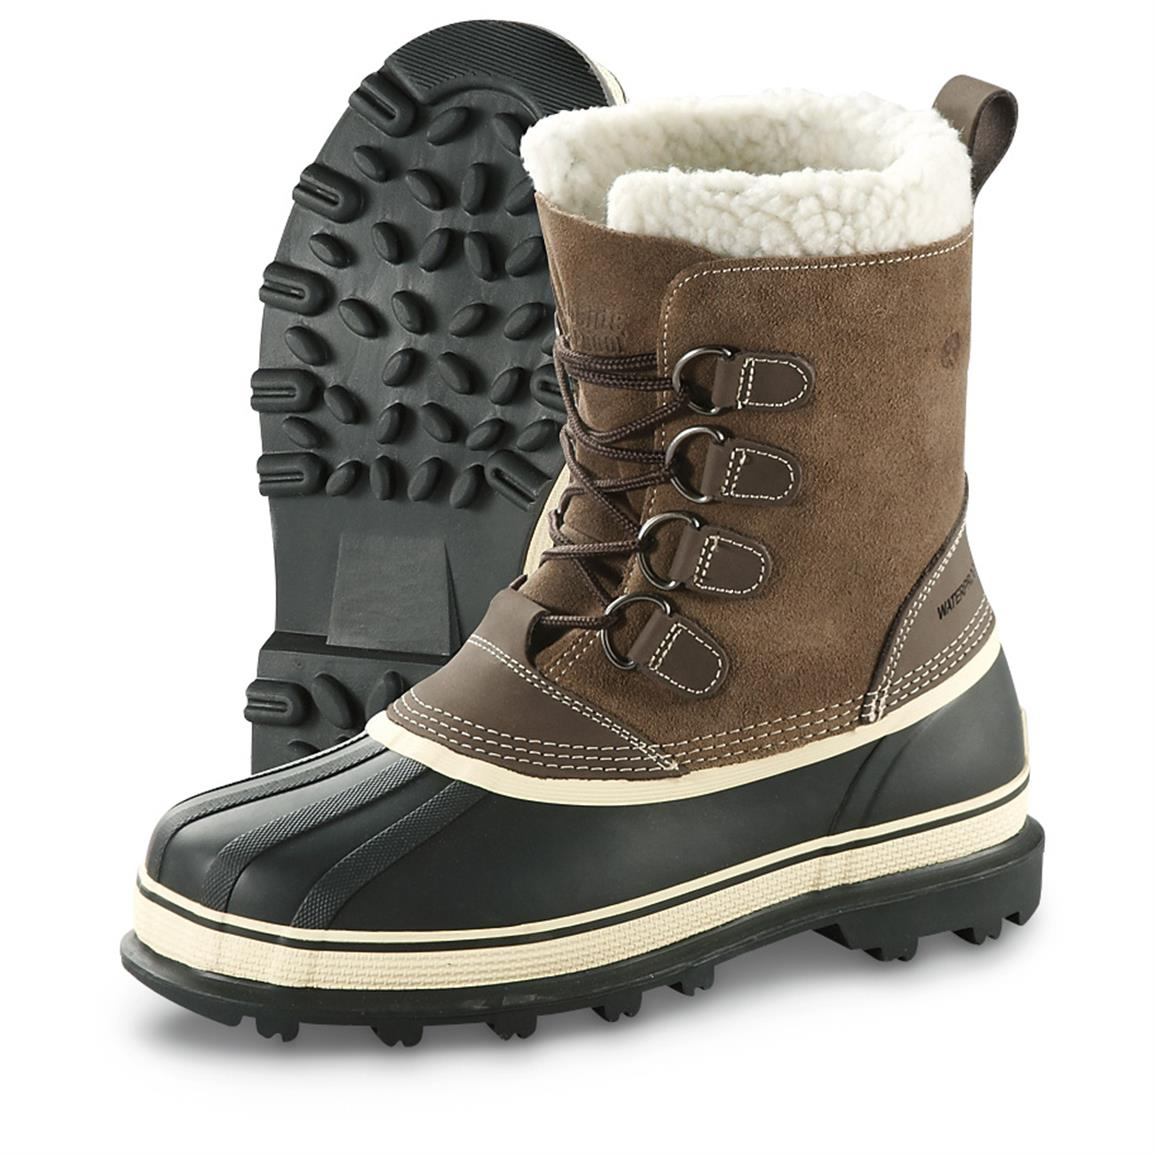 68e84358725 Northside 910826MB Back Country Men's Winter Boots